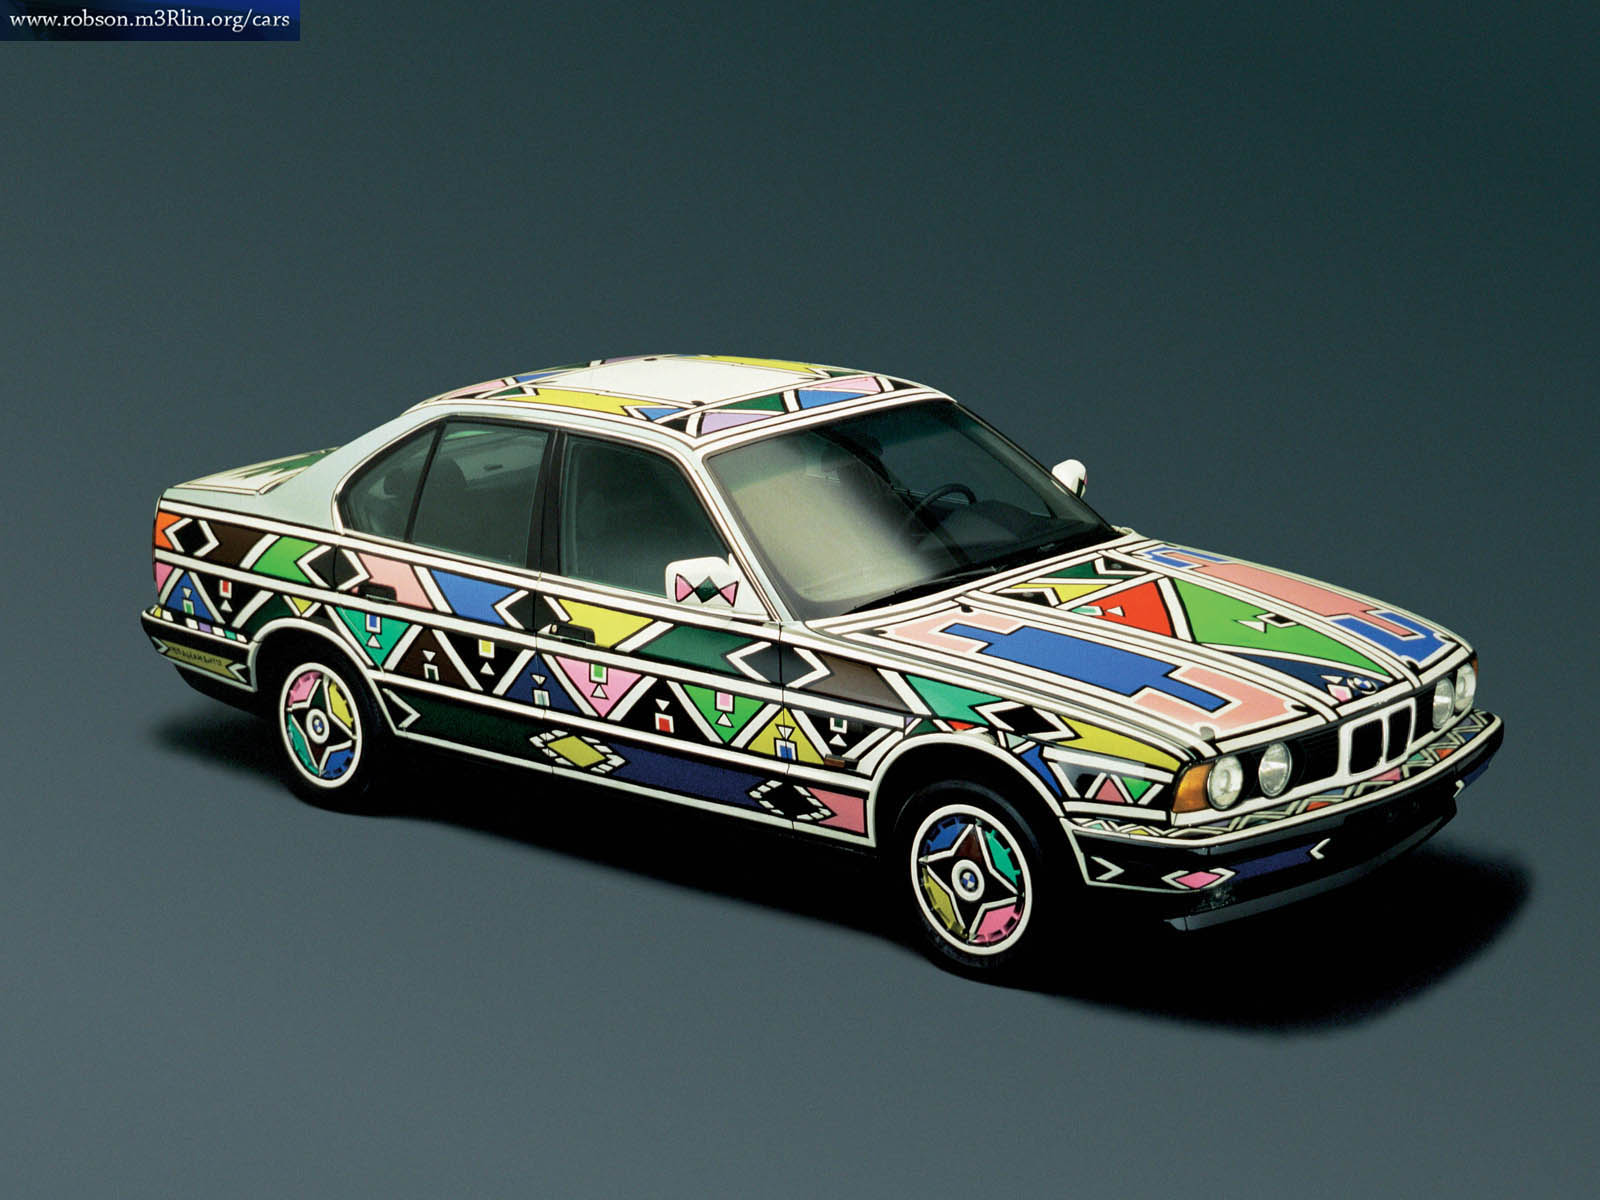 bmw-artcars-1991-525i-esther-mahlangu